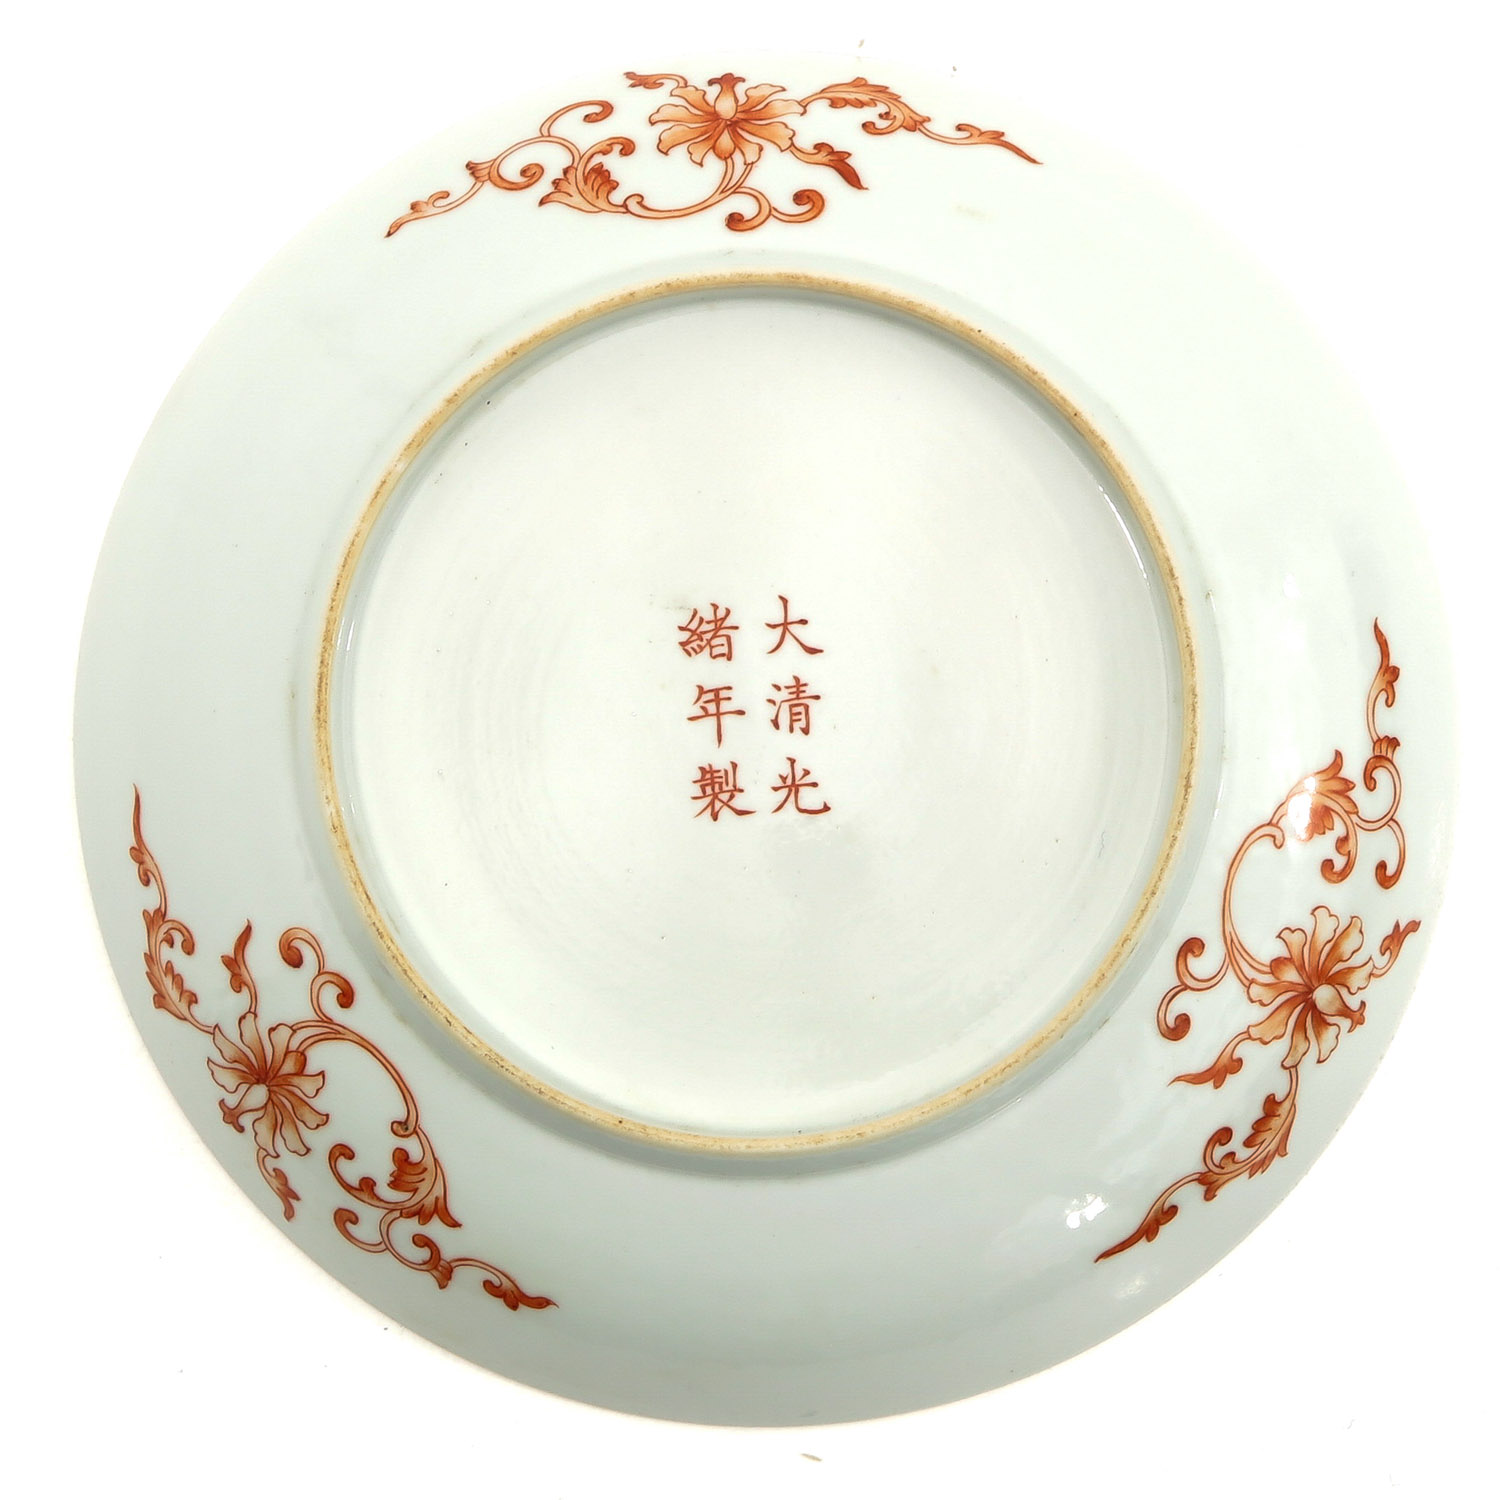 A Pair of Dragon Decor Plates - Image 4 of 10